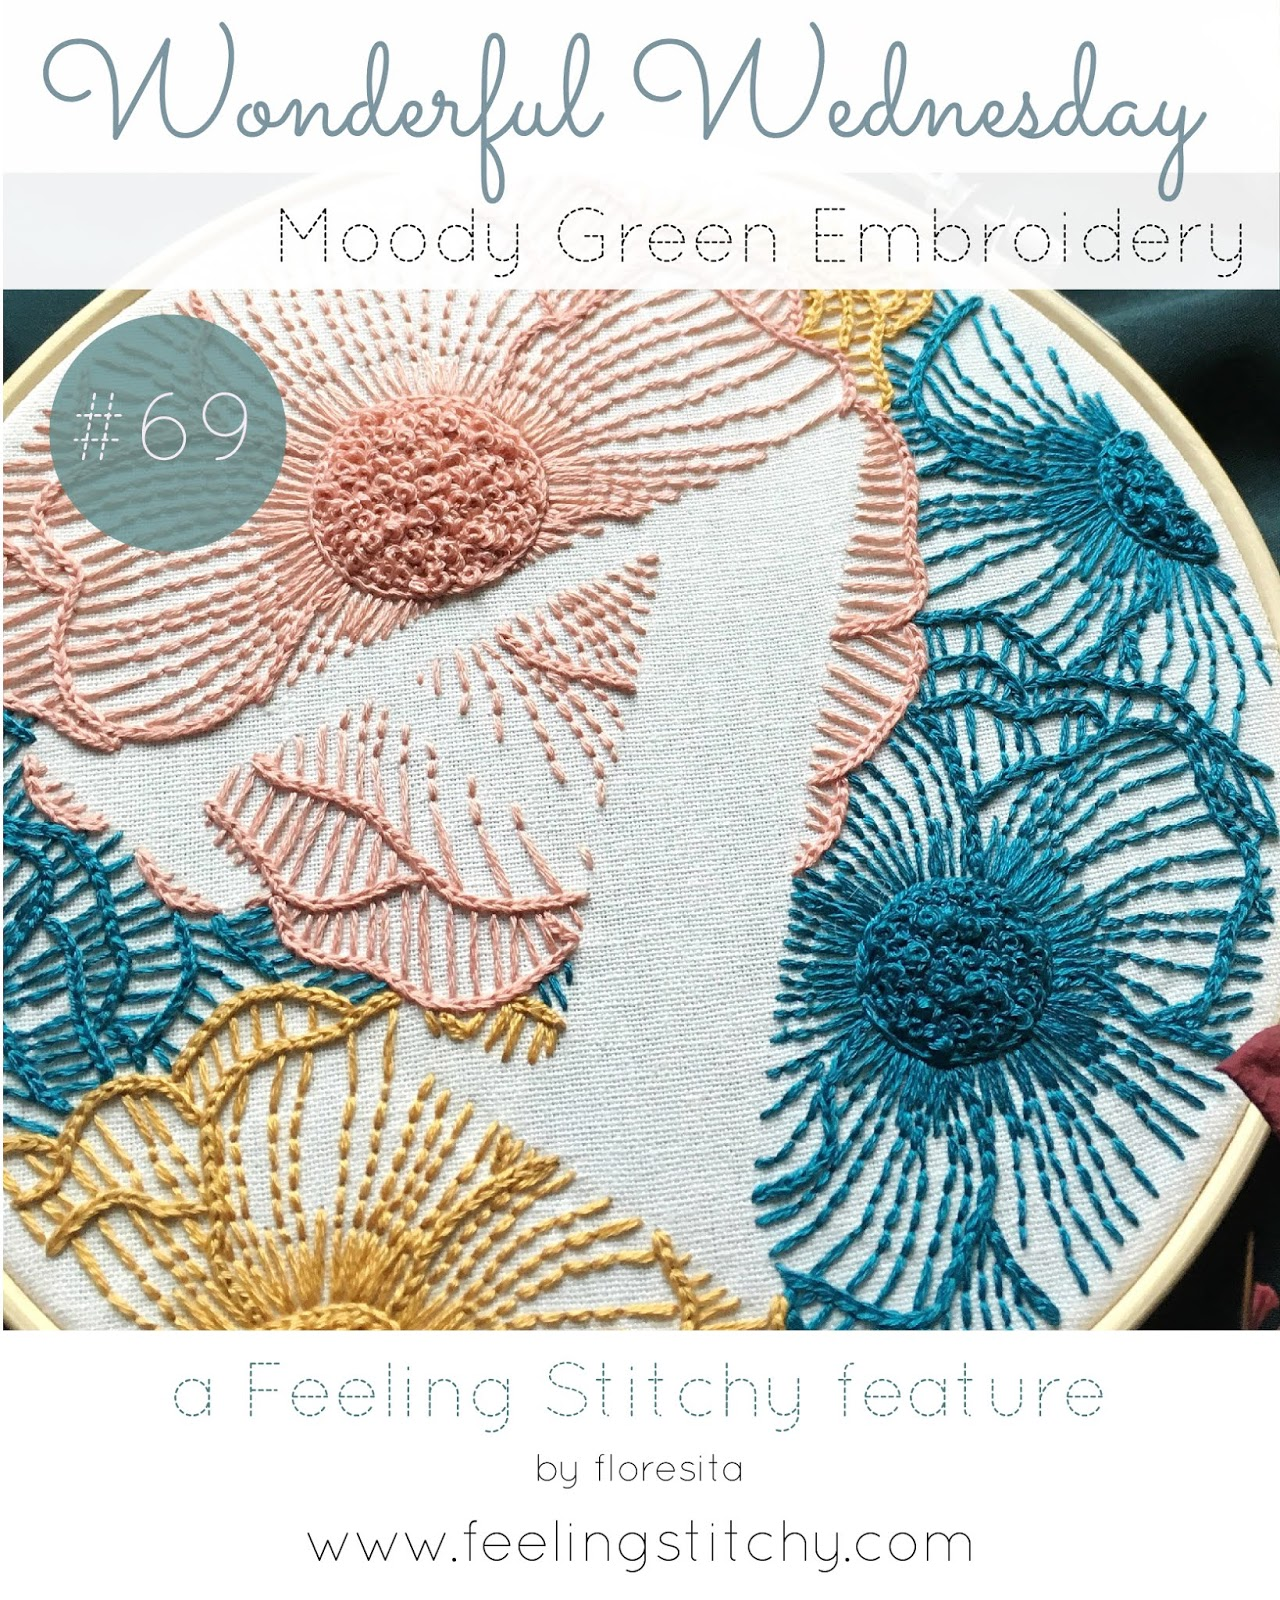 Wonderful Wednesday 69 - Moody Green Monogram Pattern as featured by floresita on Feeling Stitchy